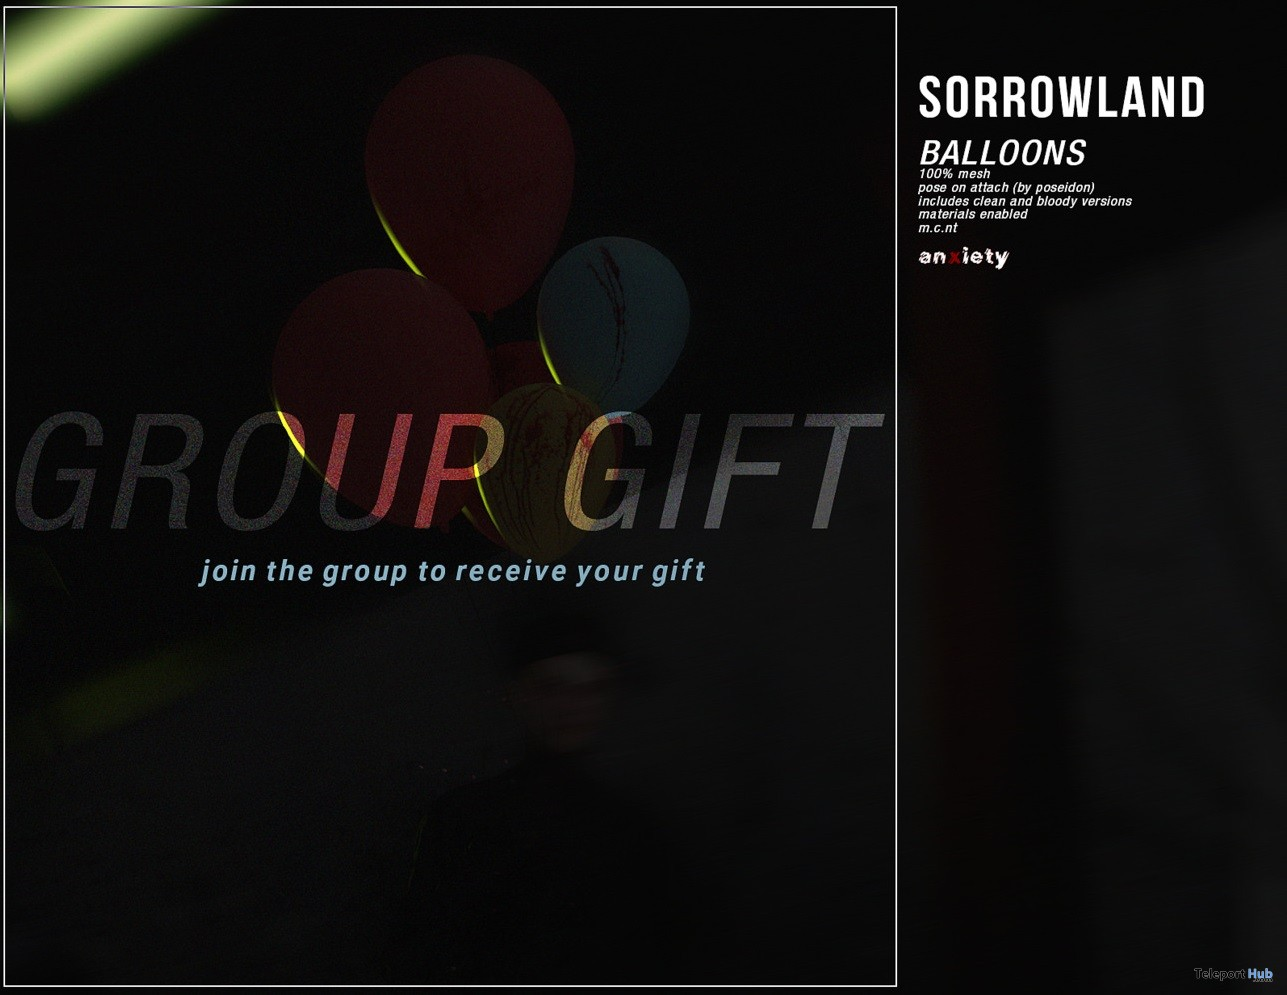 Sorrowland Balloons Group Gift by %anxiety - Teleport Hub - teleporthub.com